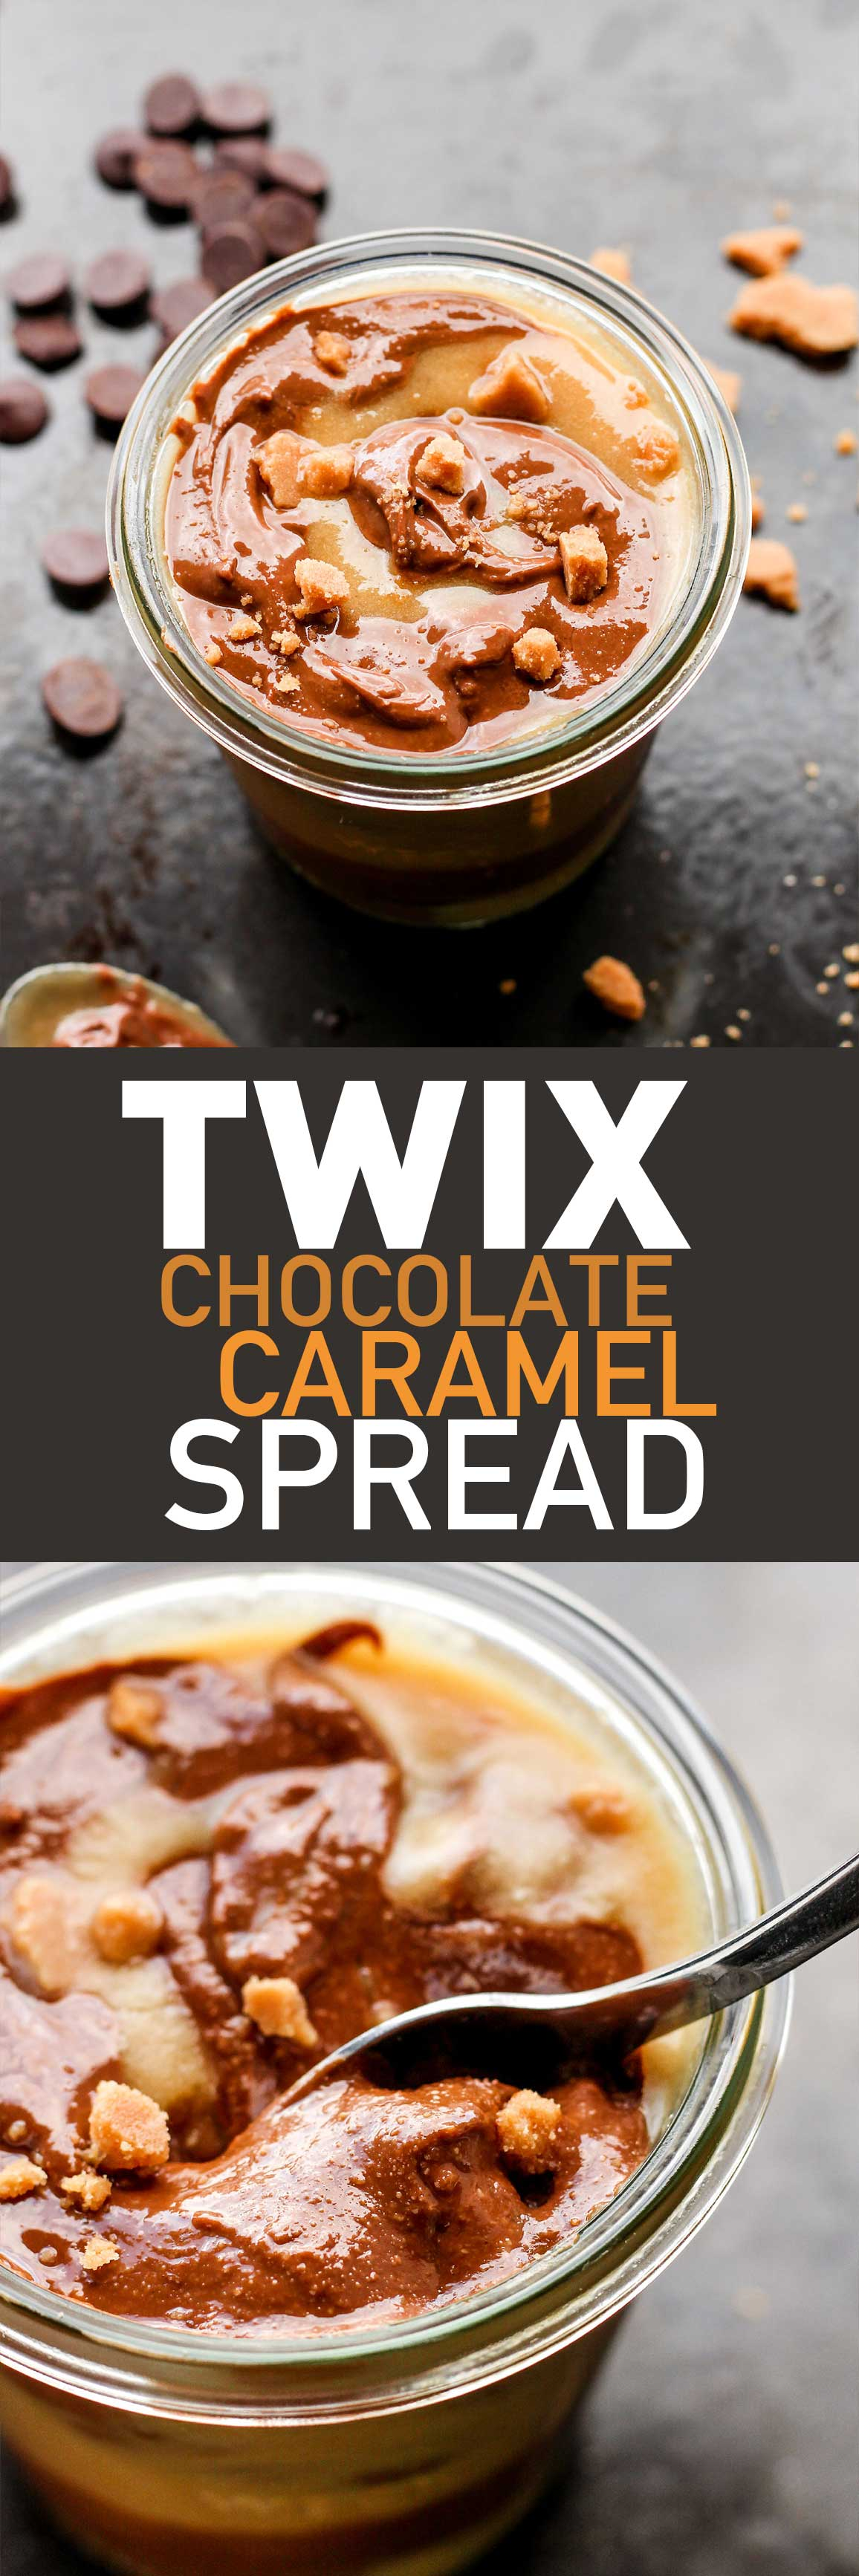 Twix Chocolate Caramel Spread